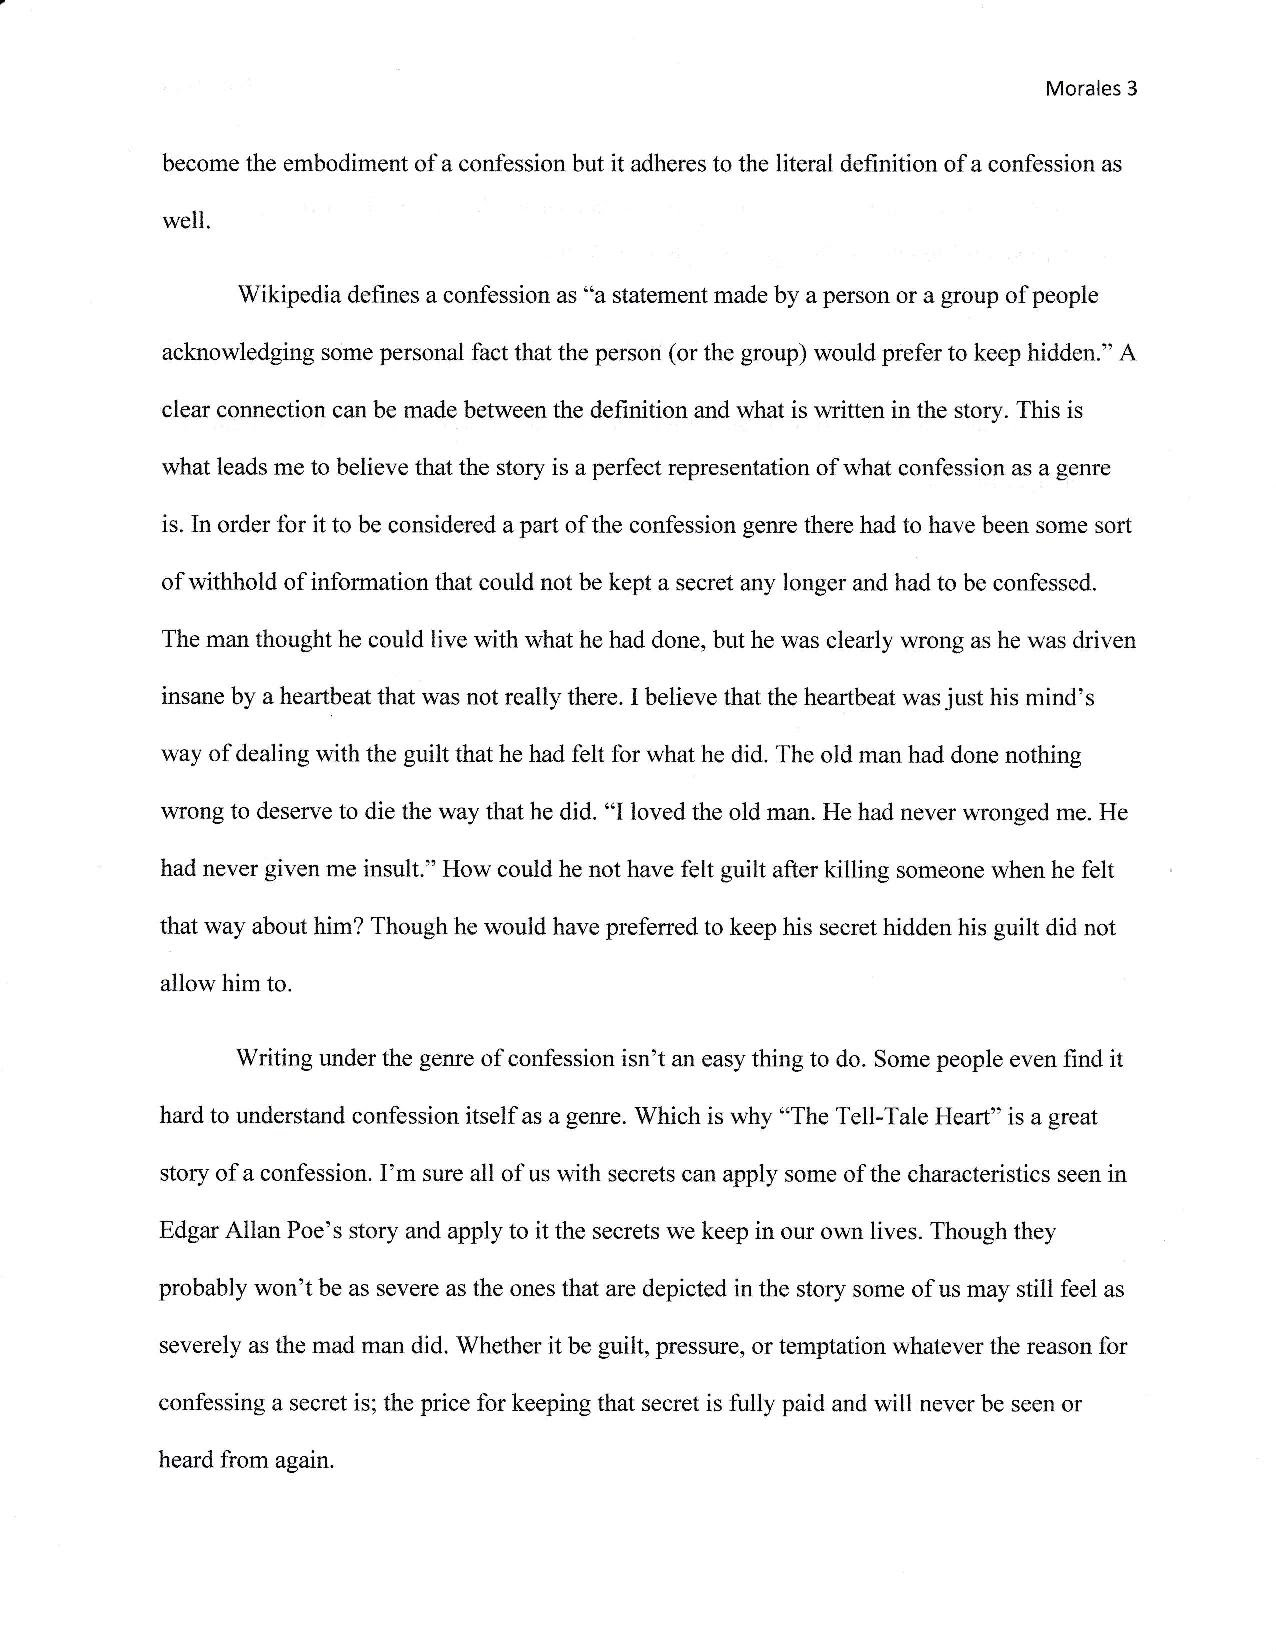 Edgar allan poe essay on writing